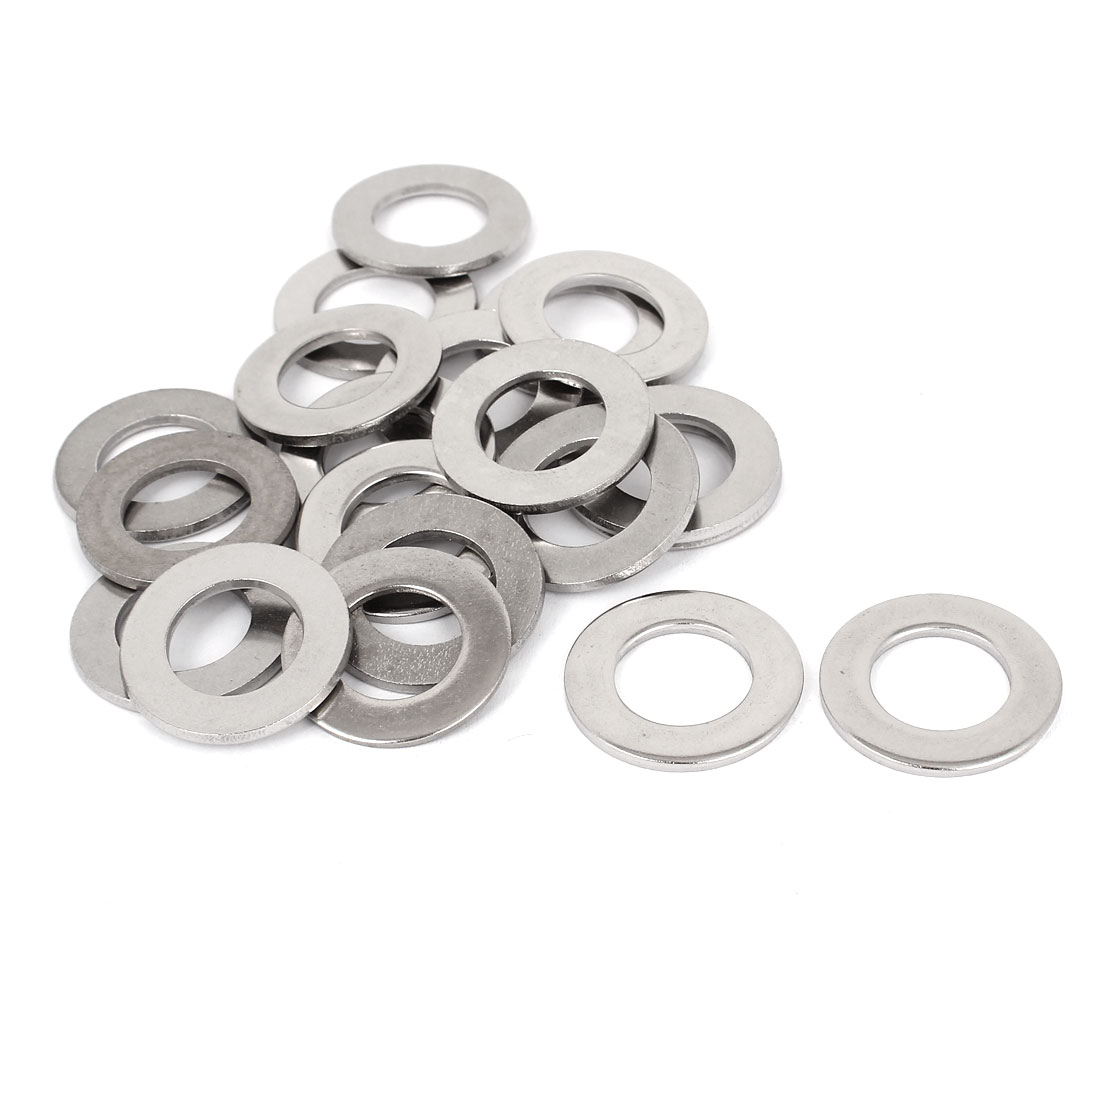 "20pcs Silver Tone 316 Stainless Steel Flat Washer 3/4"" for Screws Bolts"